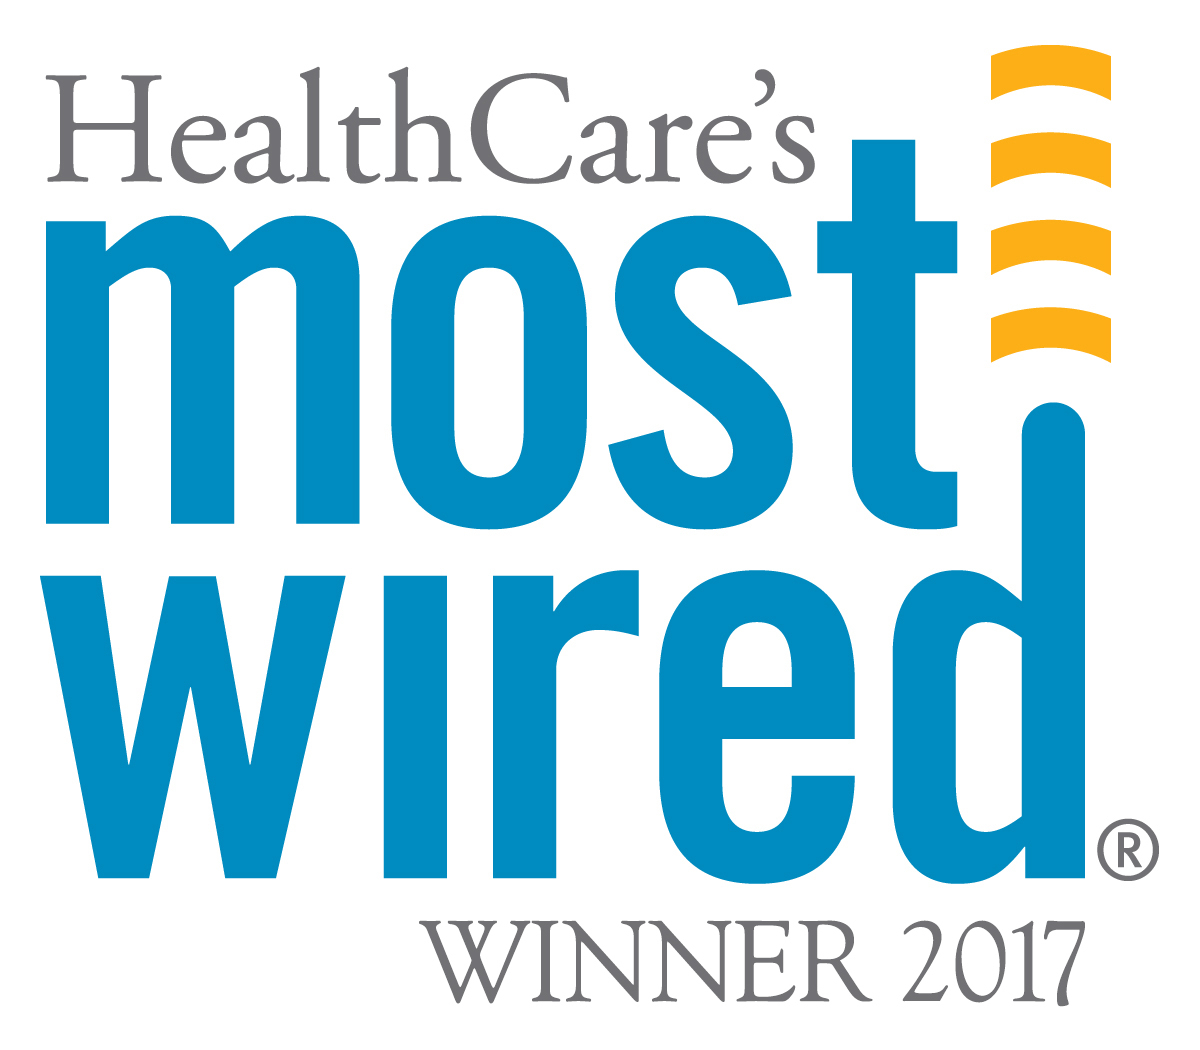 Memorial Receives Most Wired IT Award - Memorial Healthcare